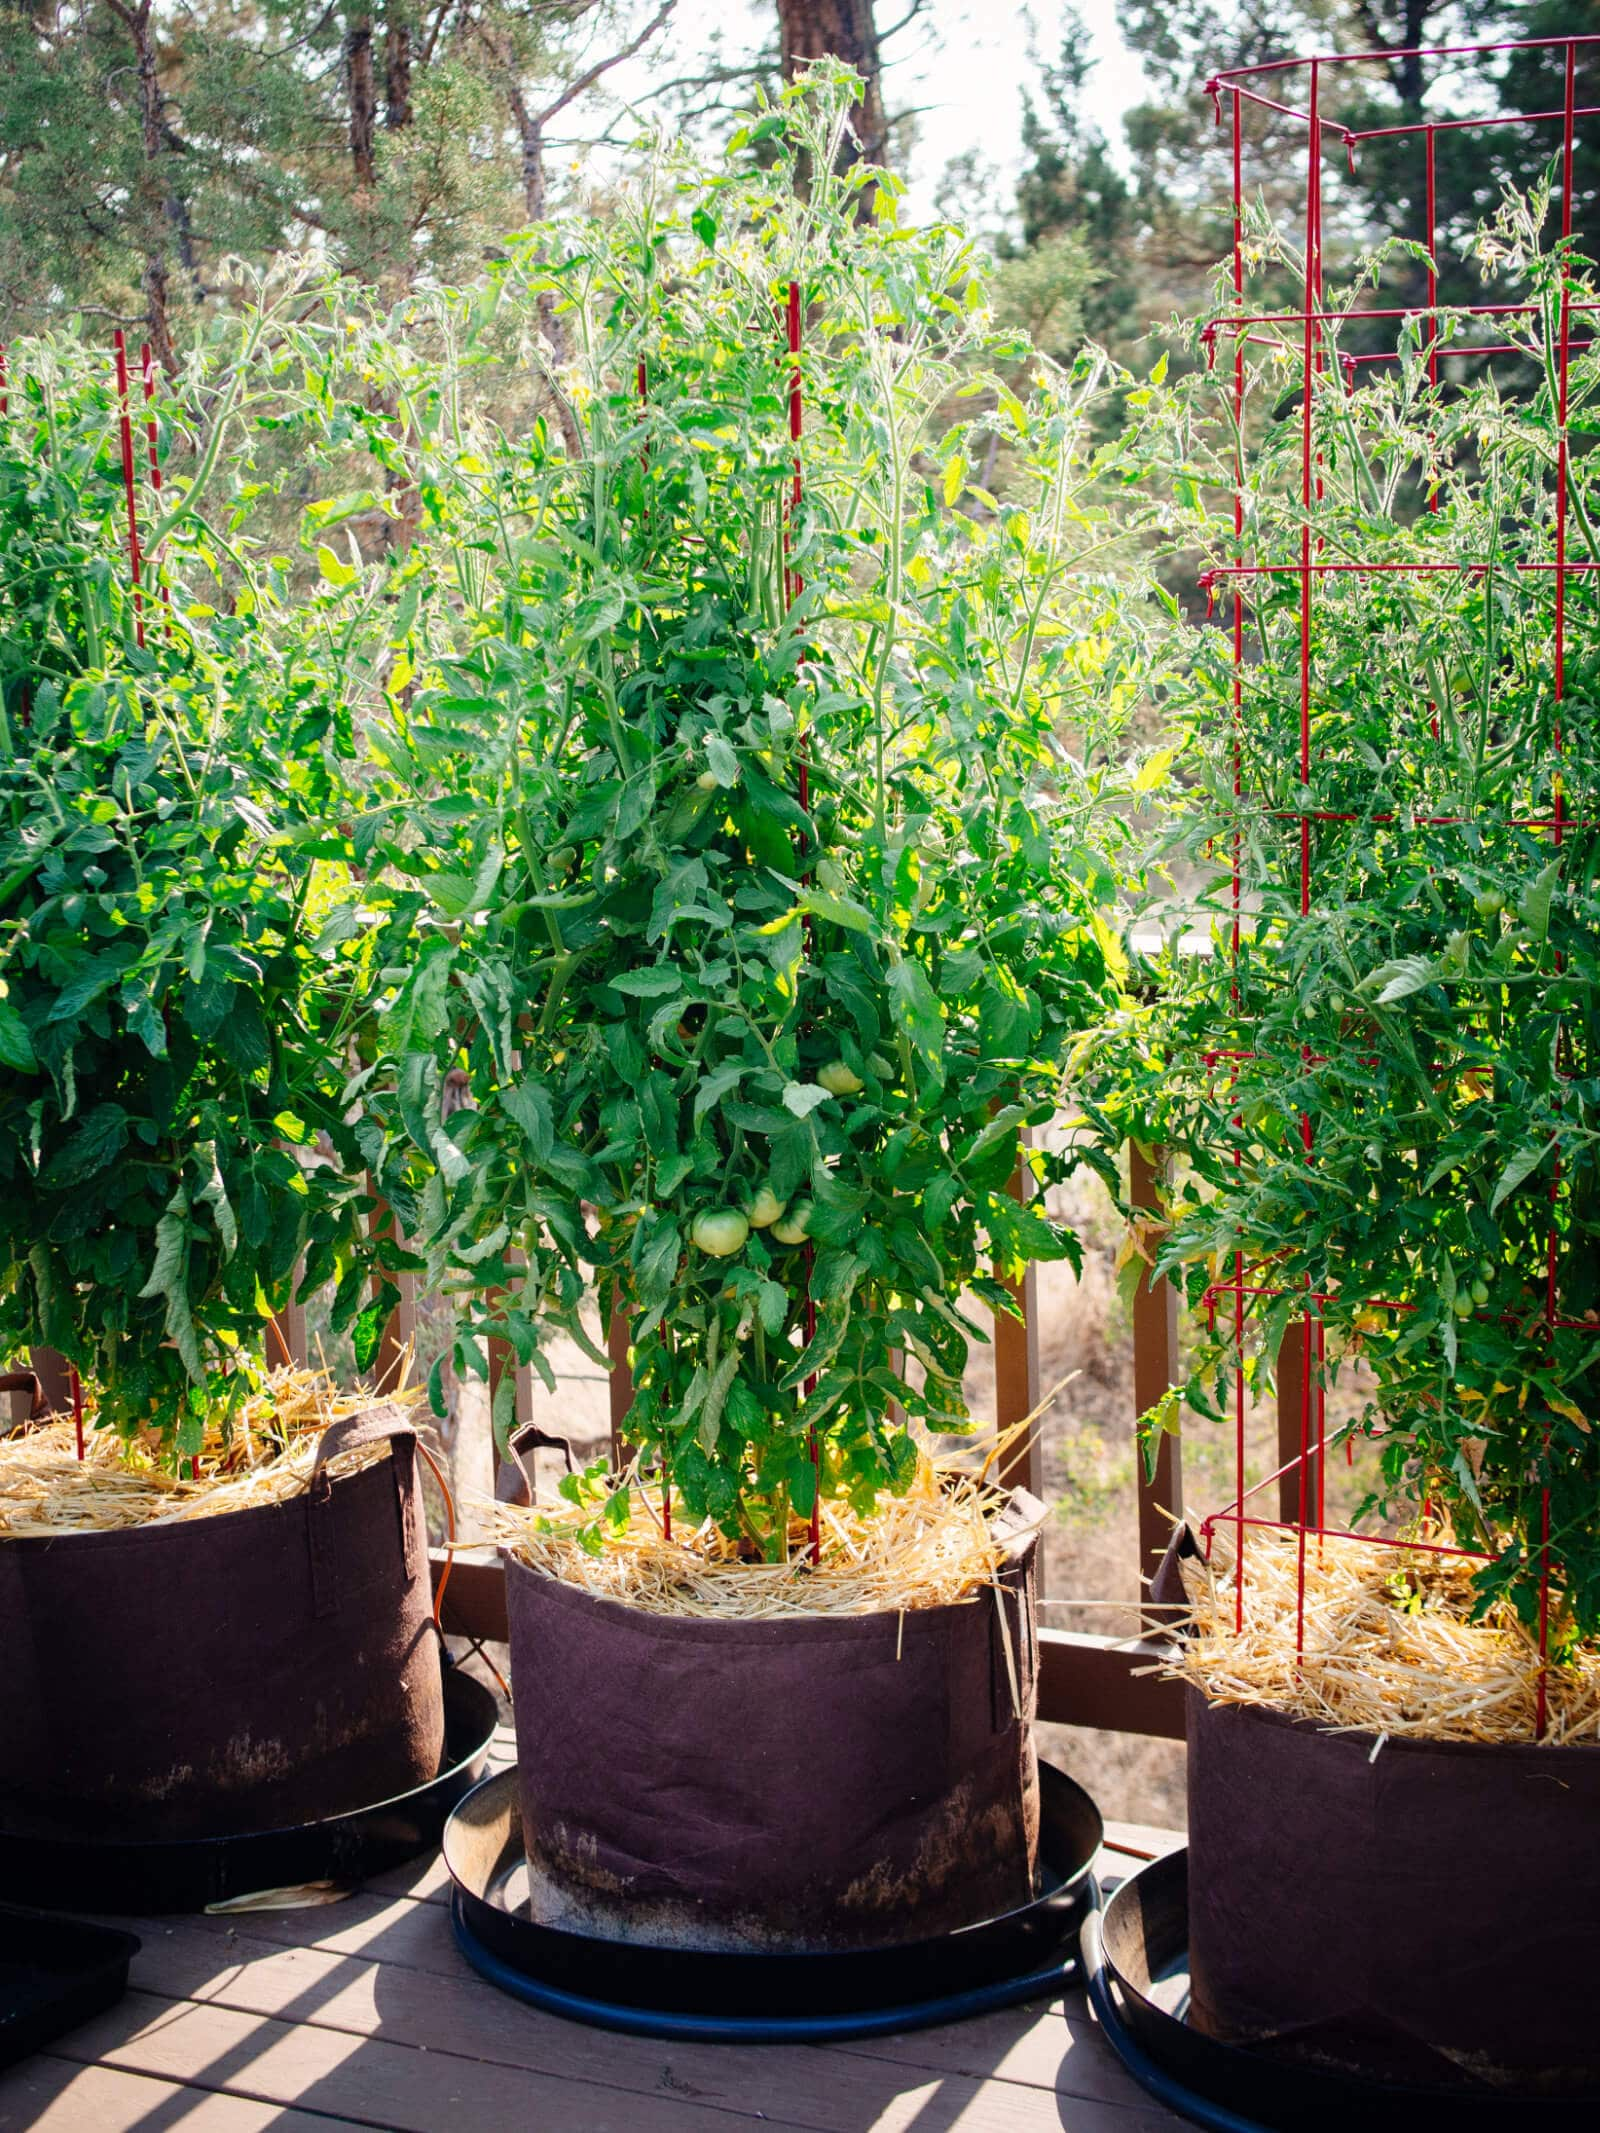 Tomato plants thriving in 20-gallon containers